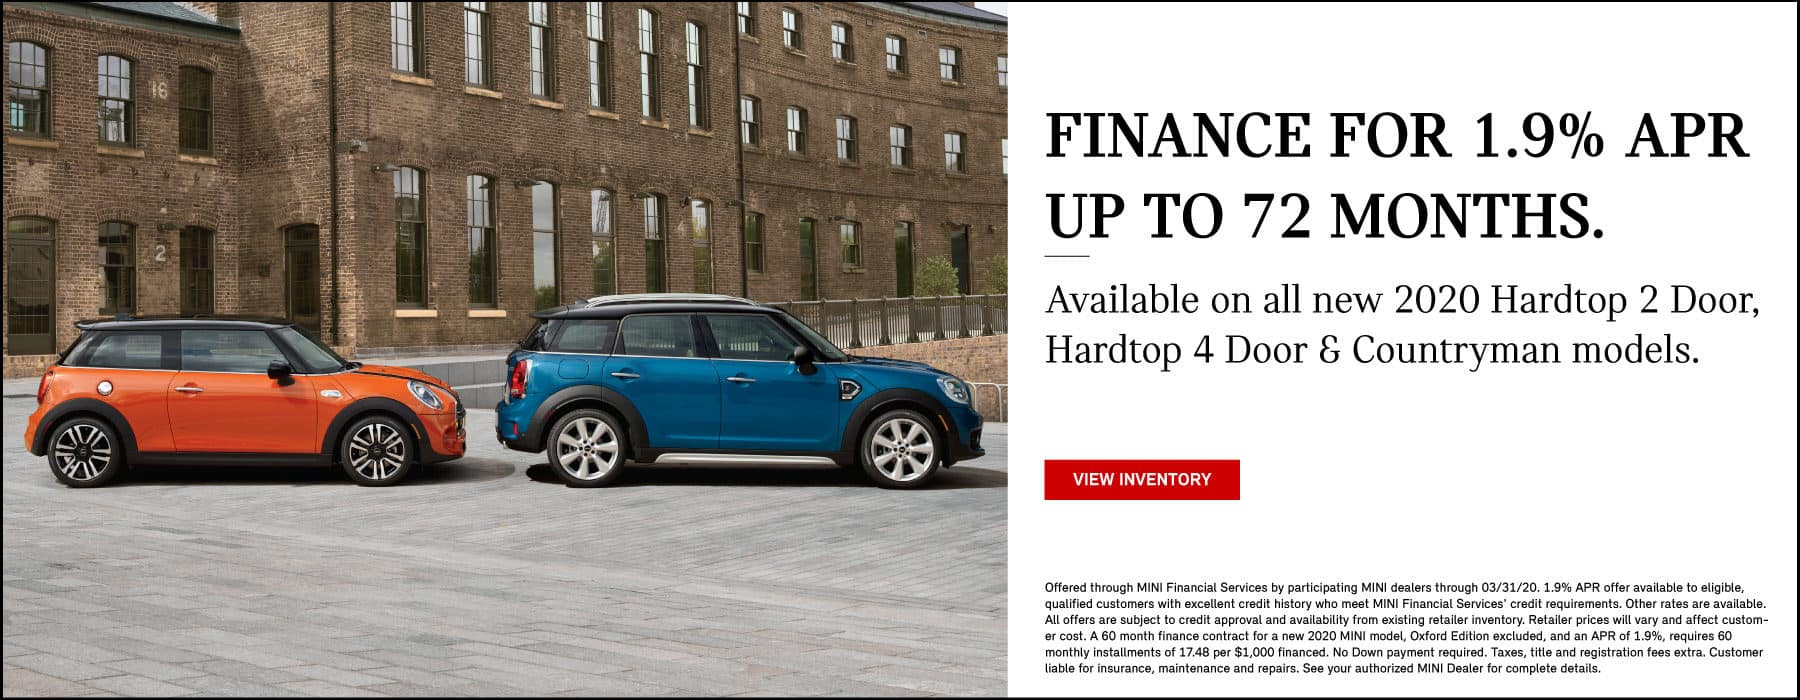 Finance for 1.9% APR up to 72 months. Available on all new 2020 Hardtop 2 Door, Hardtop 4 Door and countryman models. View Inventory. Two MINIs parked outside.